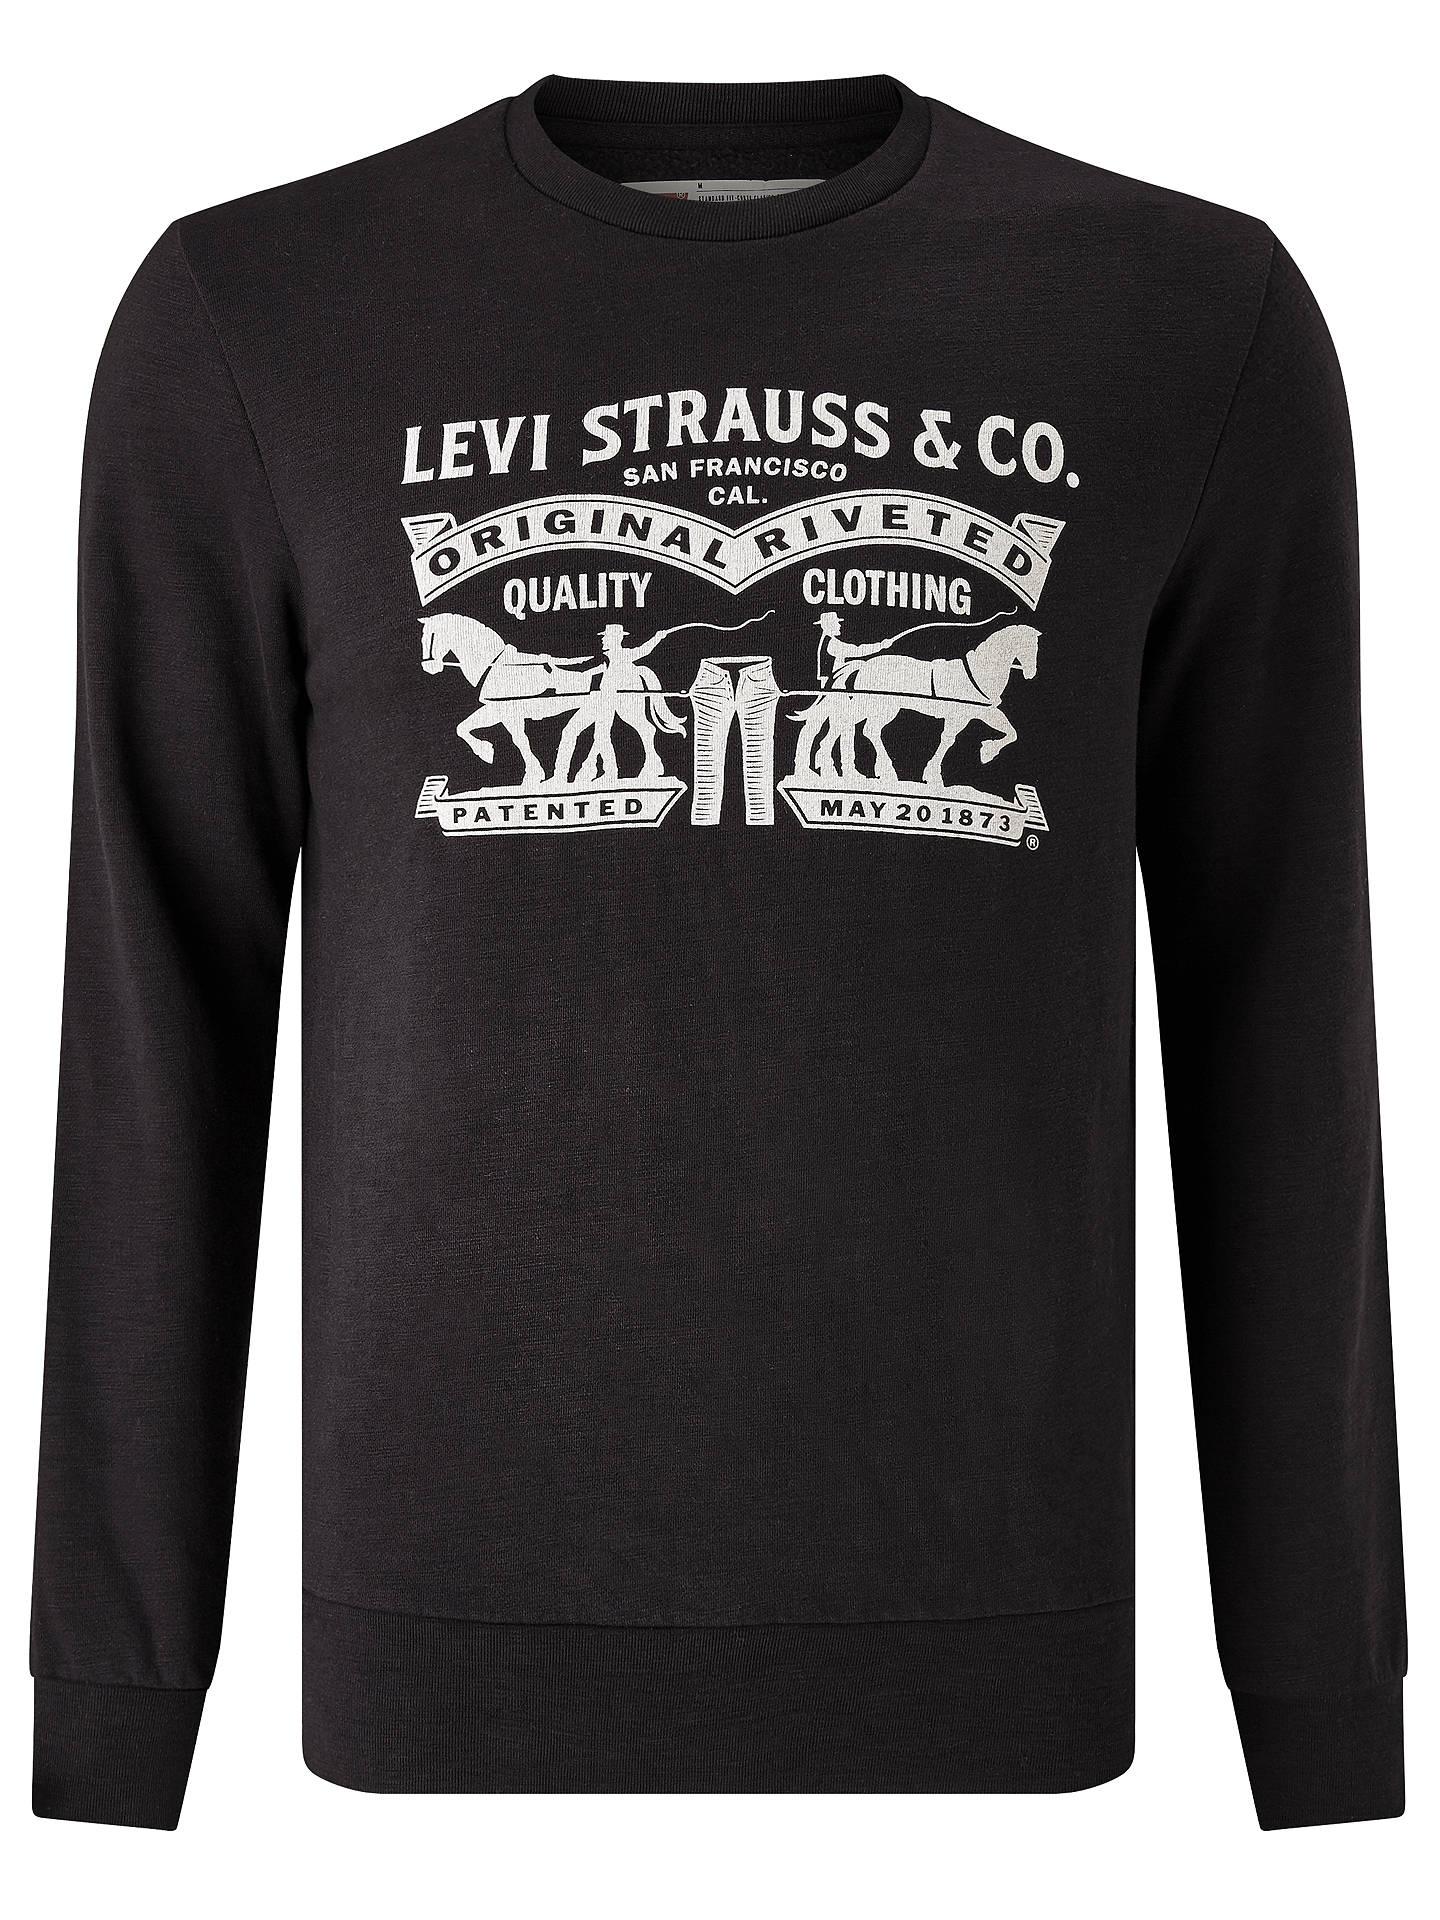 f5d4bd86 Buy Levi's Two Horse Graphic Crew Neck Sweatshirt, Black, S Online at  johnlewis.